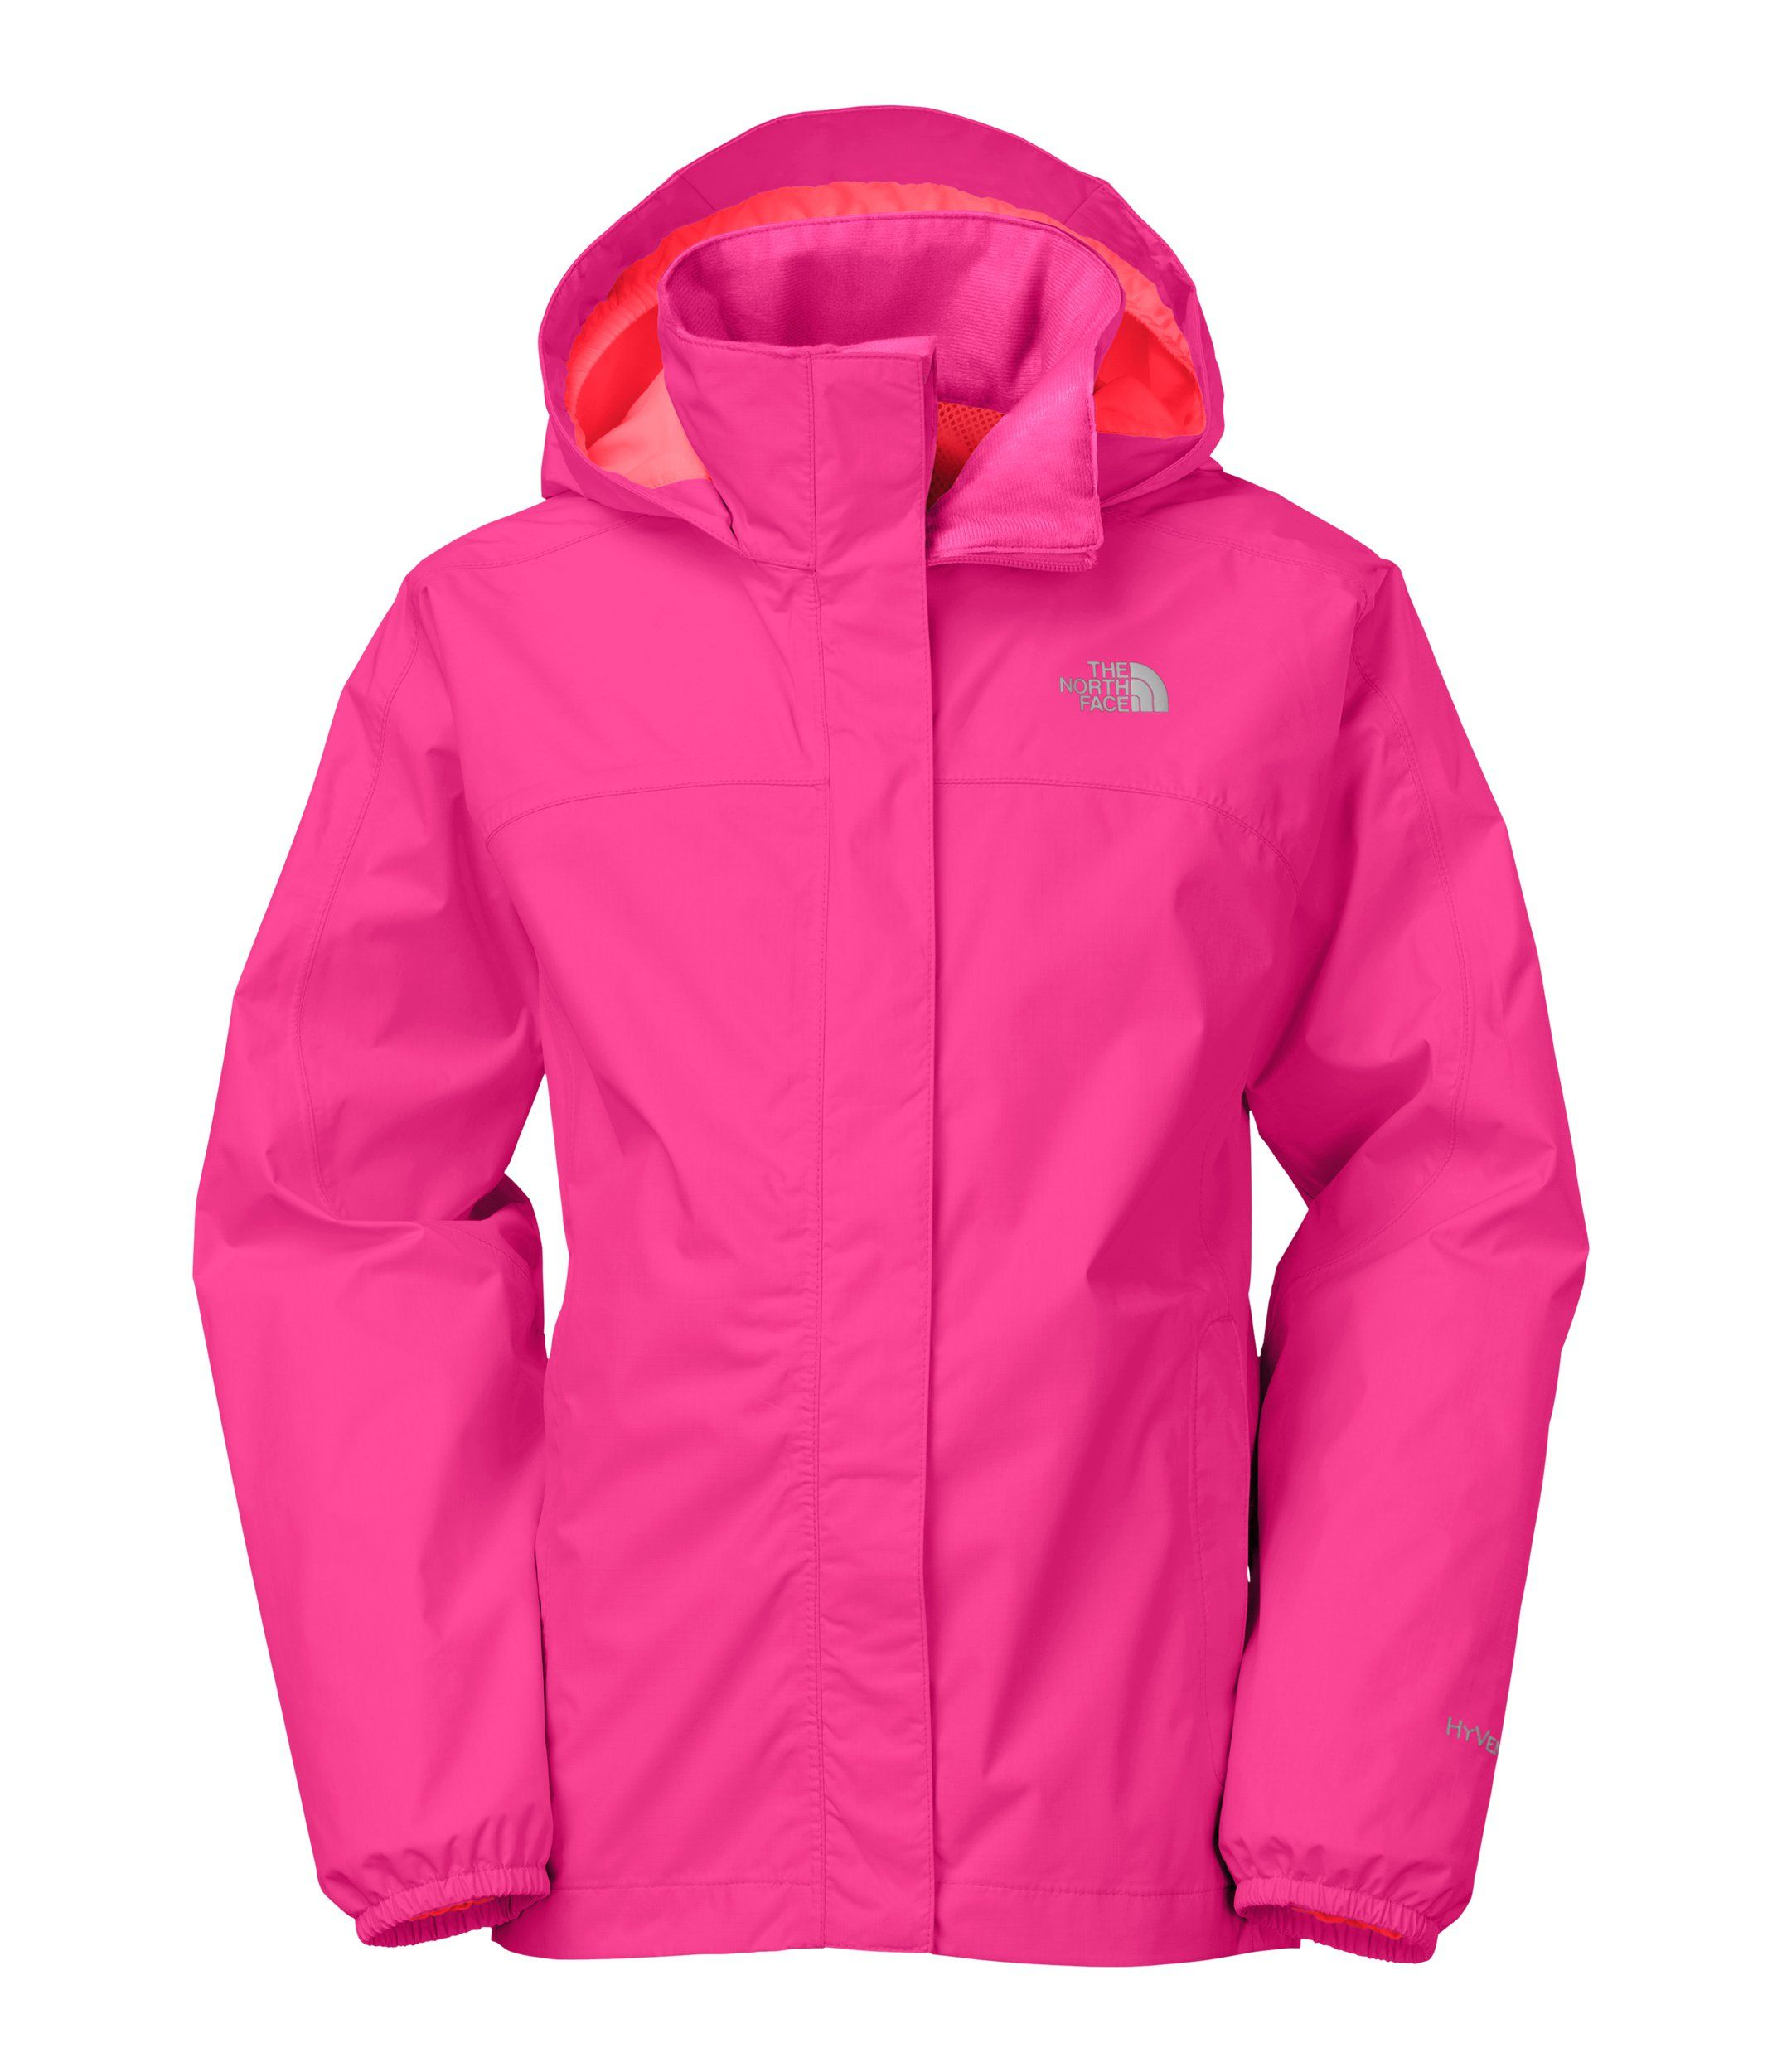 North Face Girl S Resolve Jacket In Azalea Pink 65 Perfect For Any Little Girl Who Loves Pink Available At Sportique Girls Jacket Jackets North Face Girls [ 2500 x 2150 Pixel ]